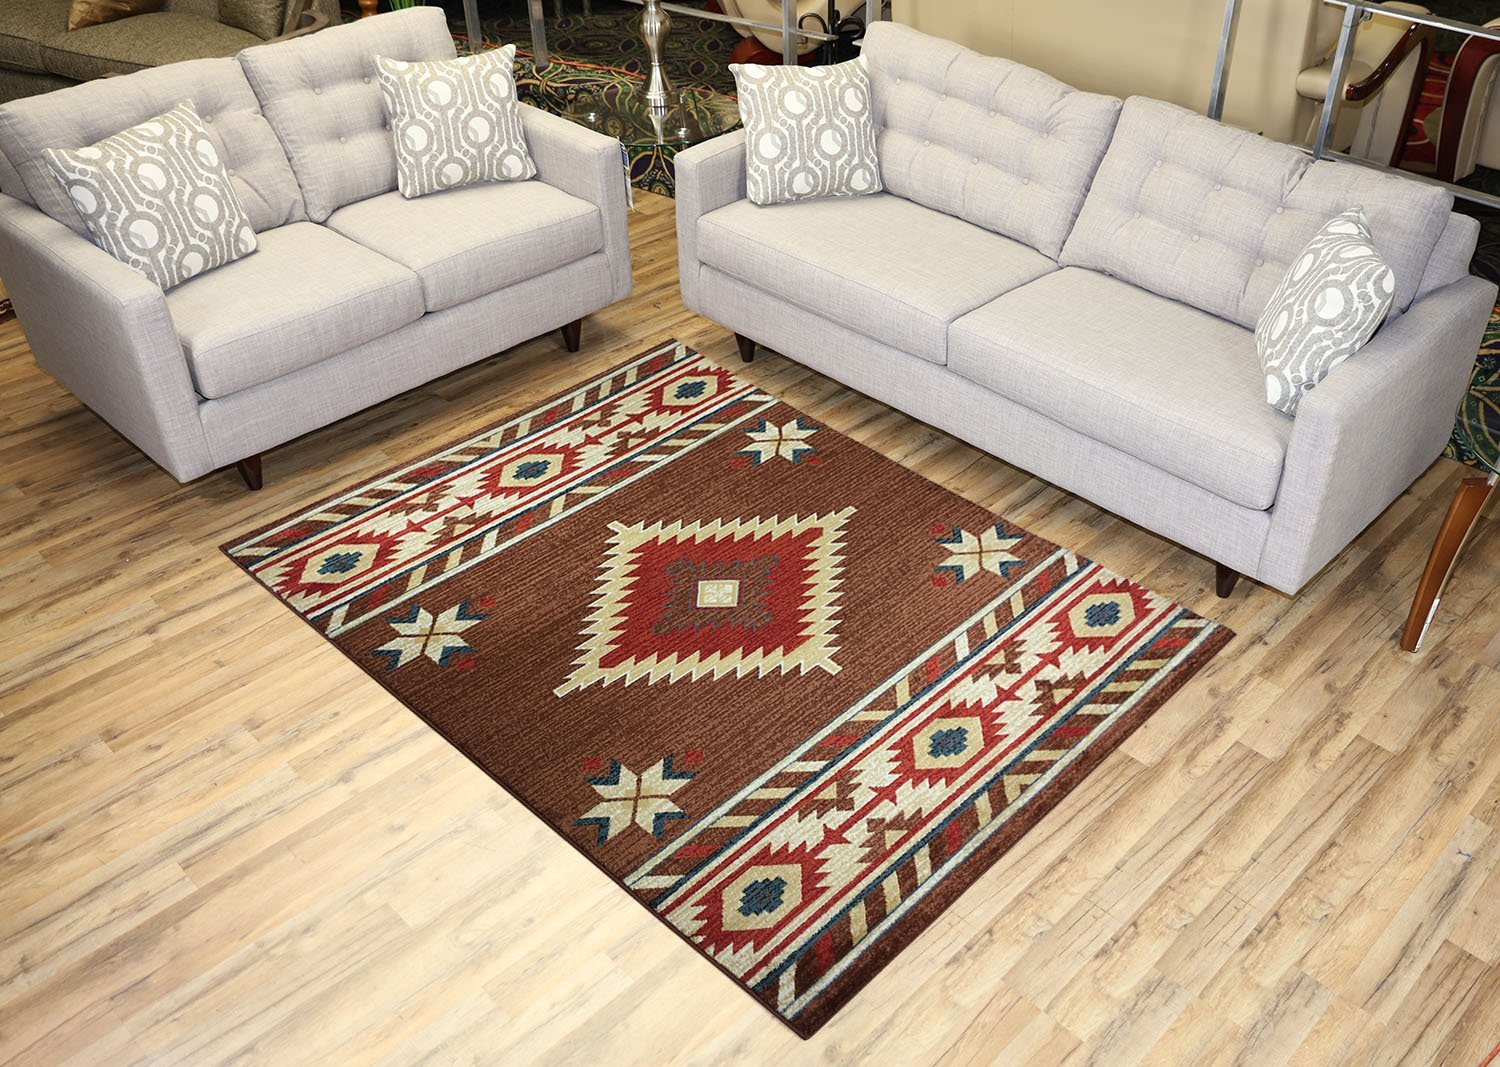 Nevita Collection Southwestern Native American Design Area